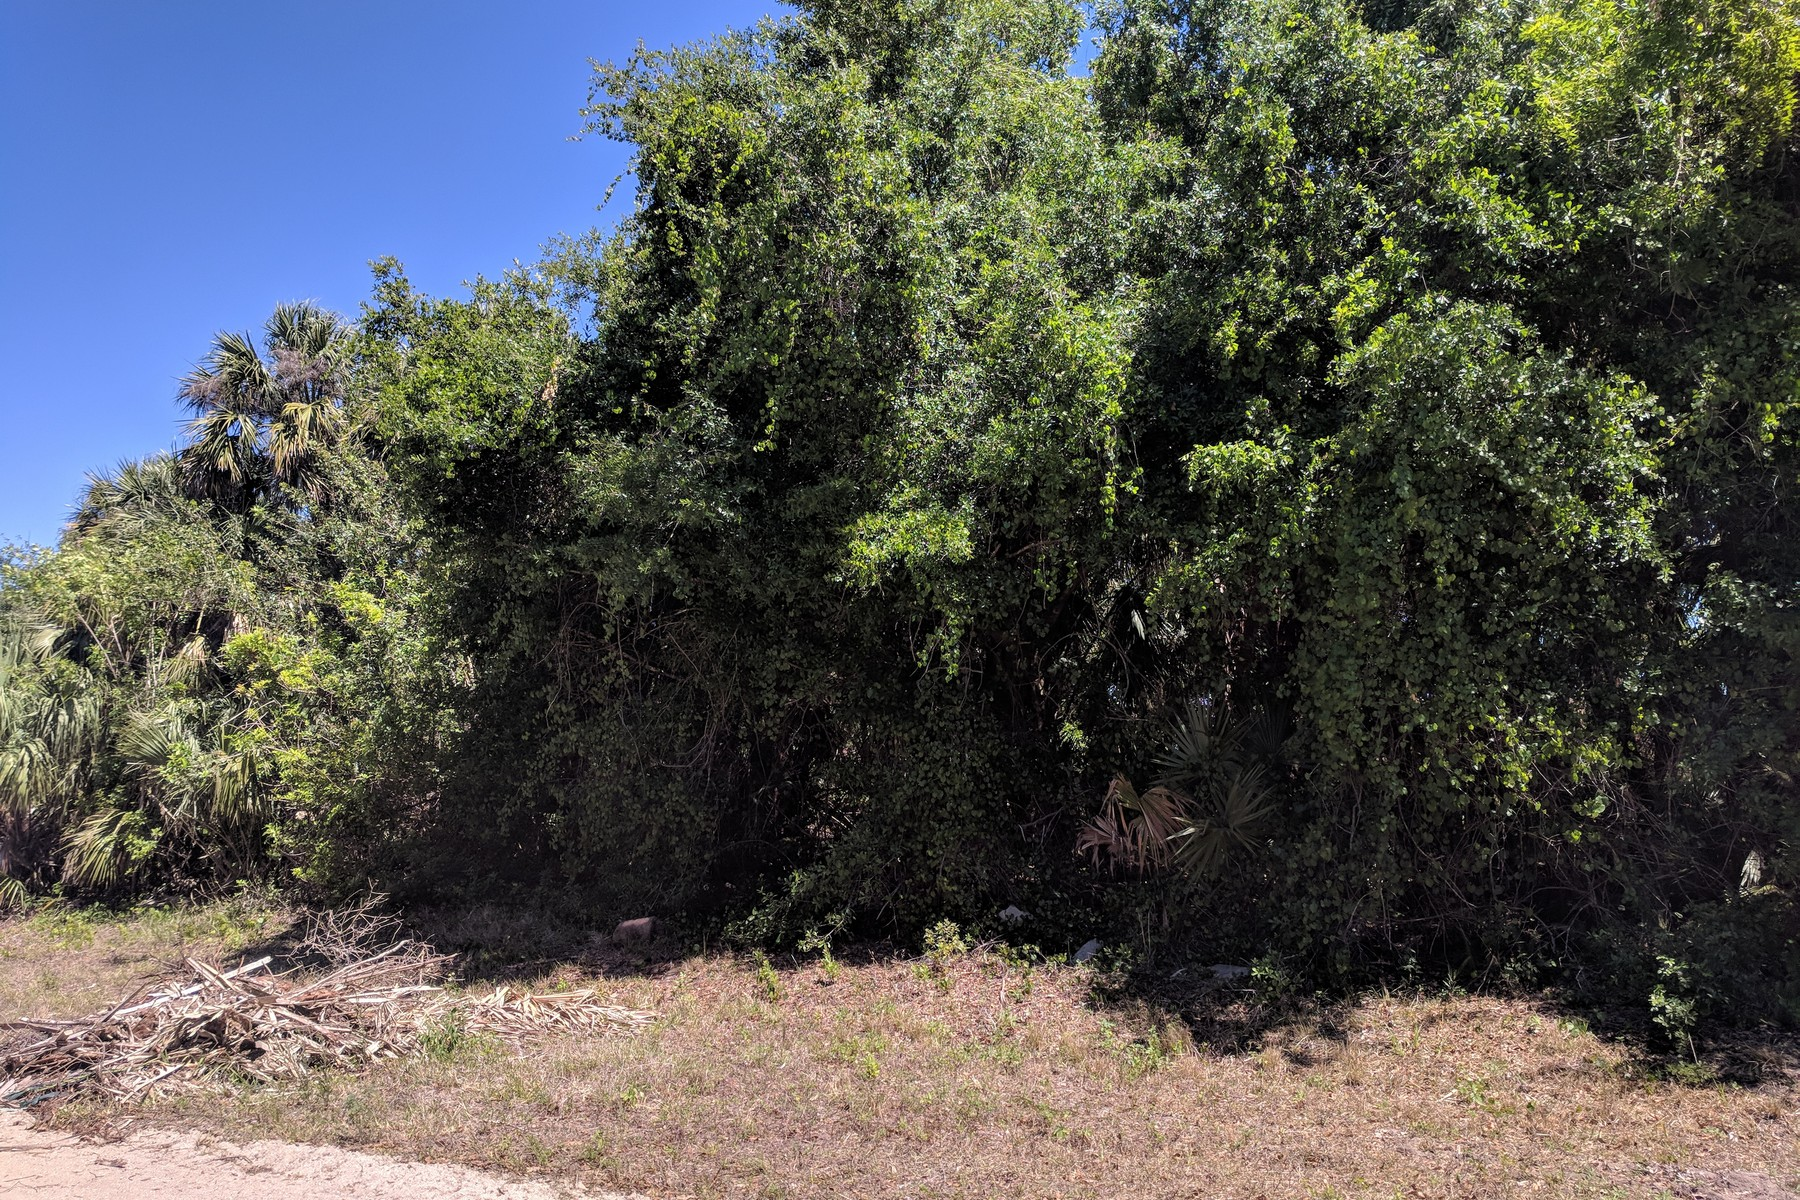 Land for Sale at Vacant Lot in Vero Lake Estates 7976 106th Avenue Vero Beach, Florida 32967 United States